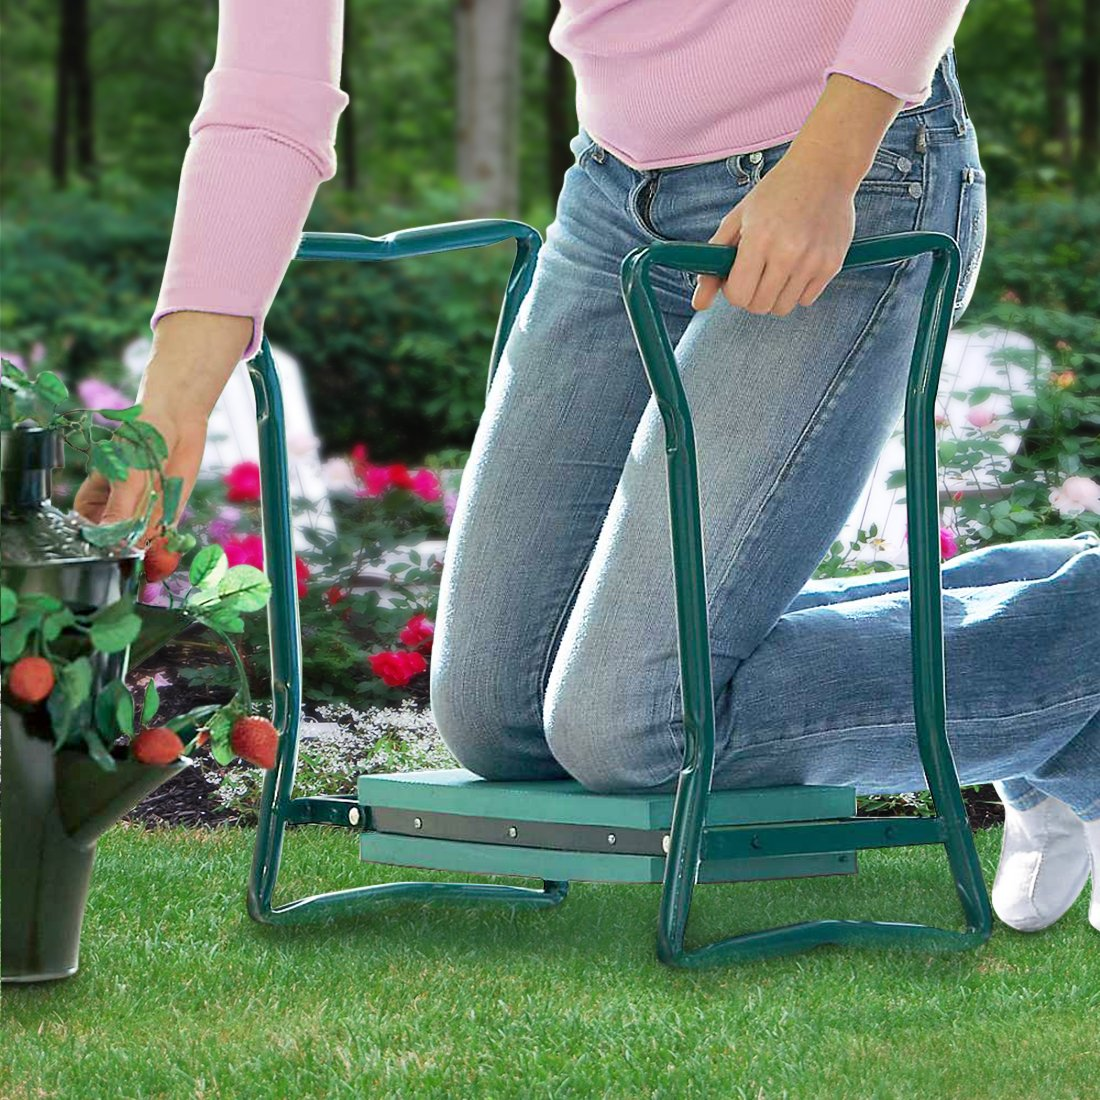 Garden Kneeler And Seat - Protects Your Knees, Clothes From Dirt & Grass Stains - Foldable Stool For Ease Of Storage - EVA Foam Pad - Sturdy and Lightweight - Comes With A Free Tool Pouch!